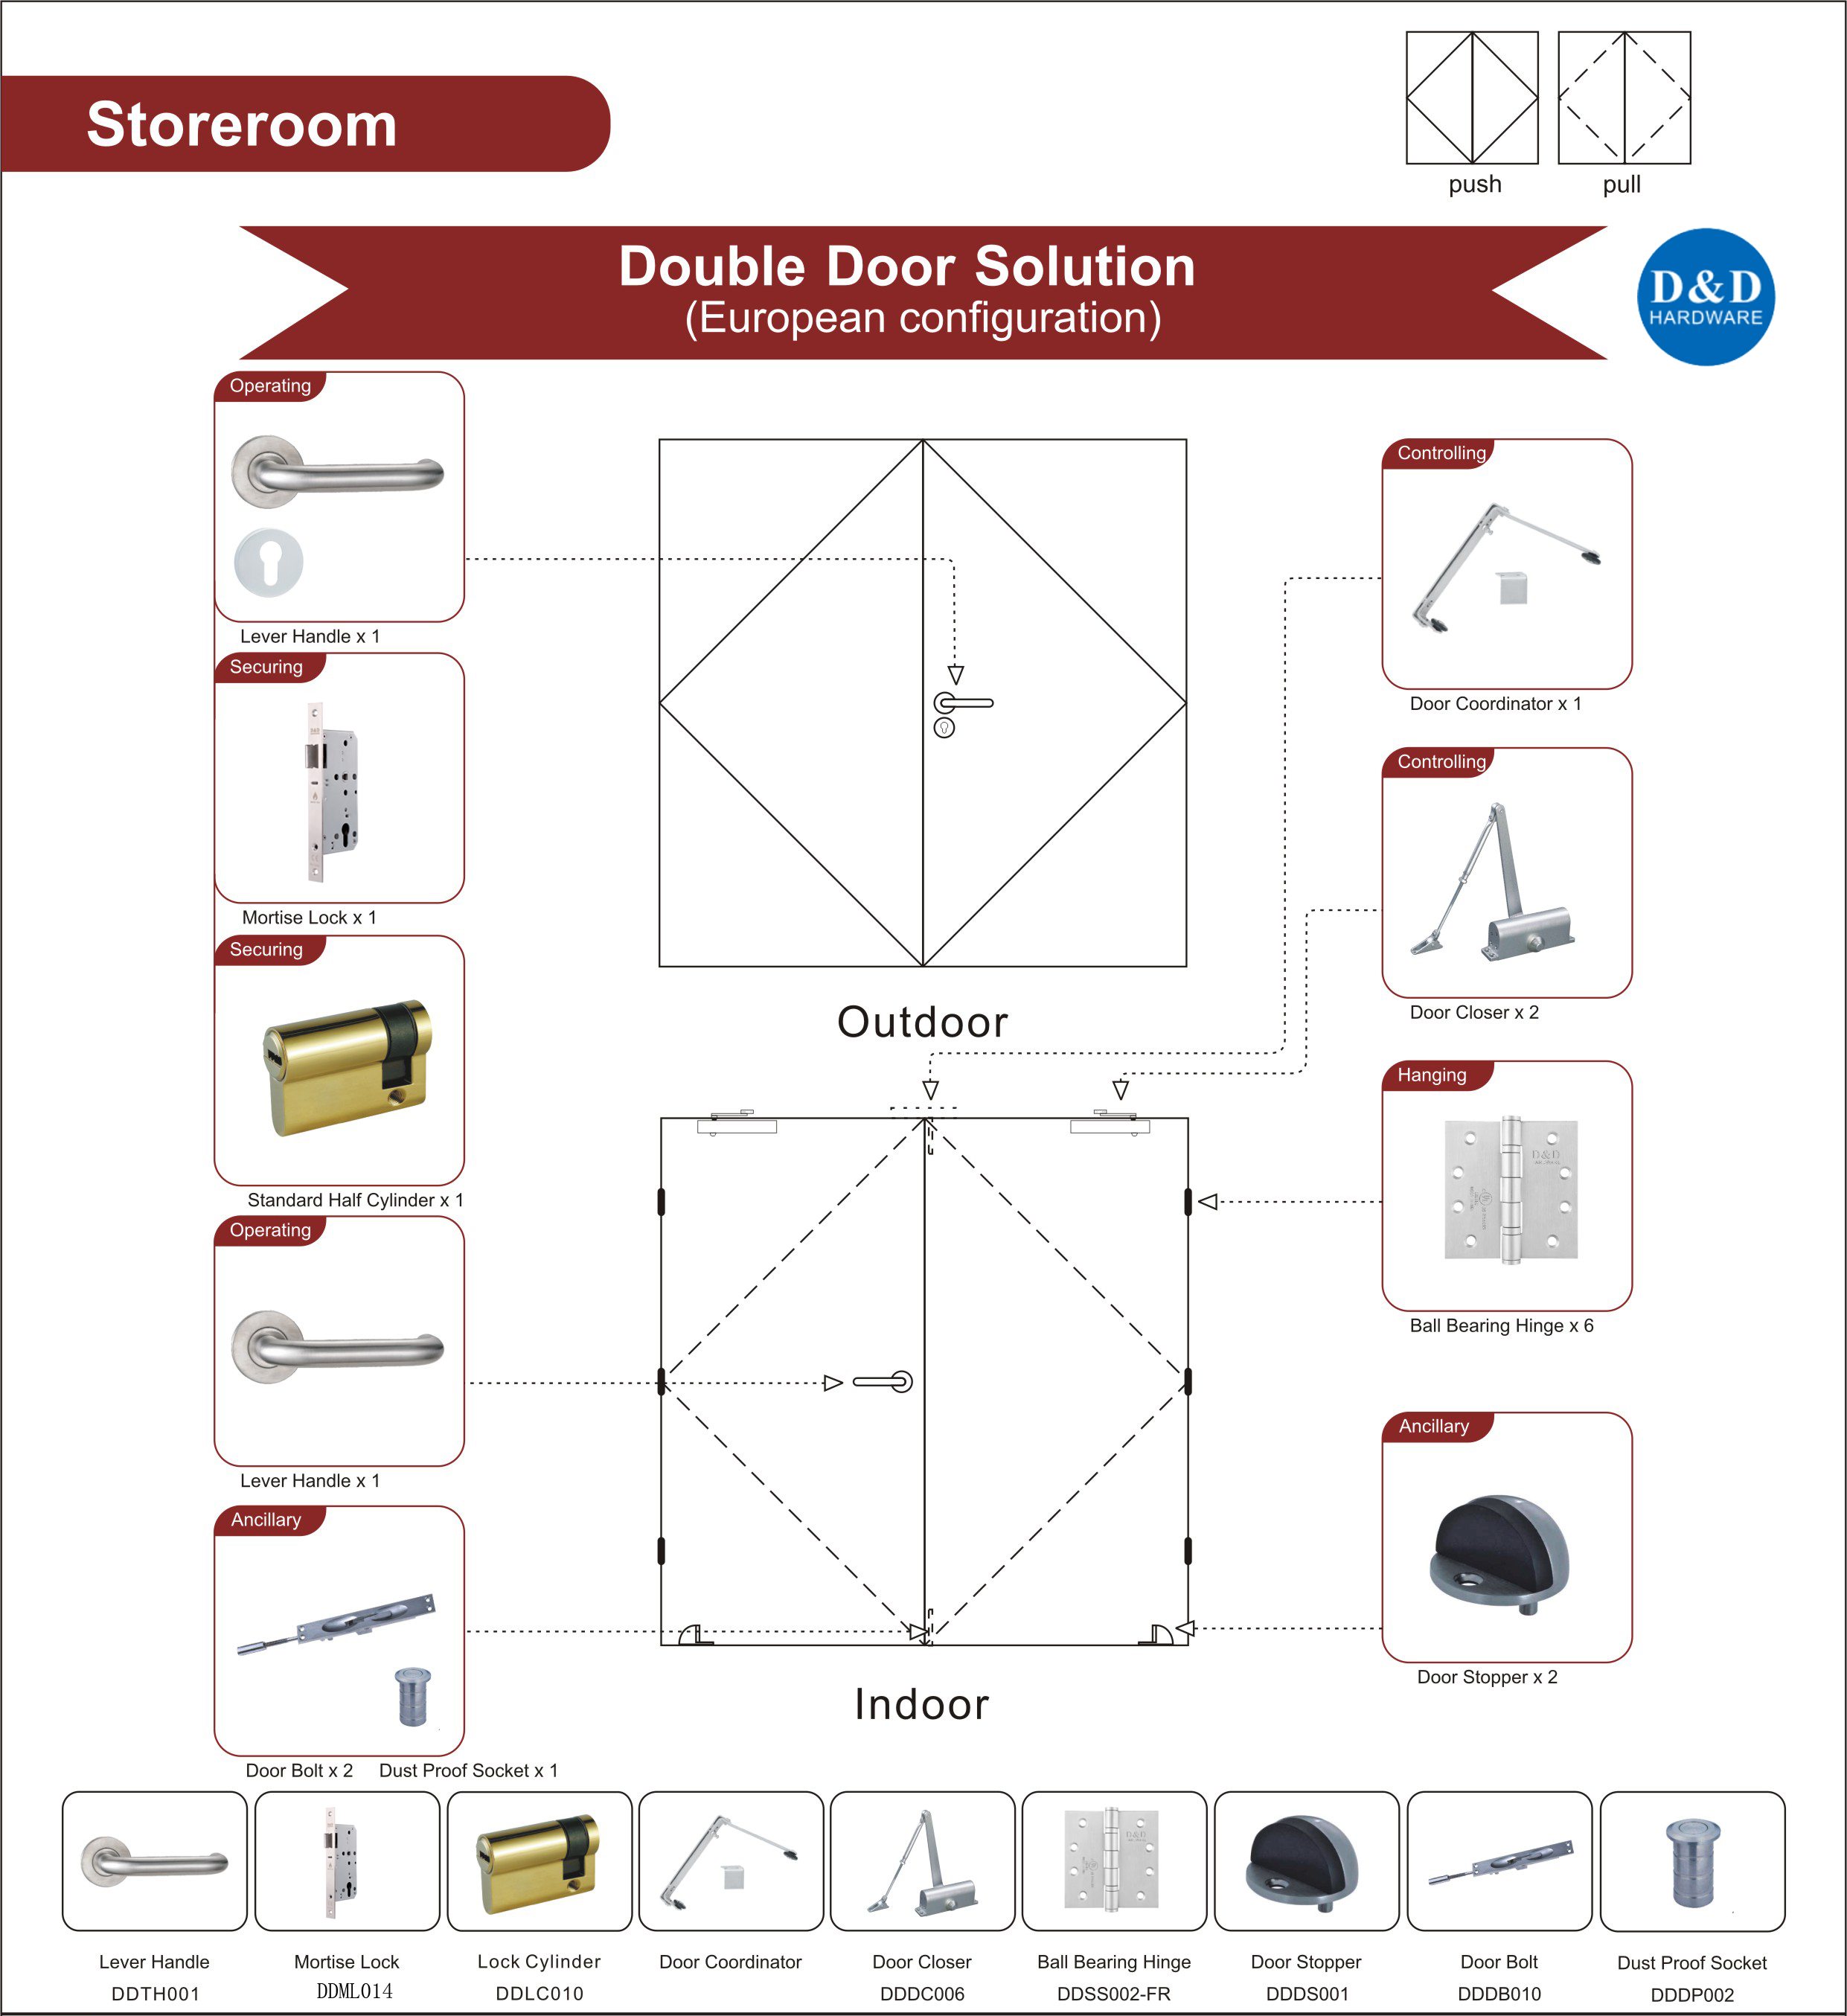 Steel Fire Rated Door Hardware for Storeroom Double Door